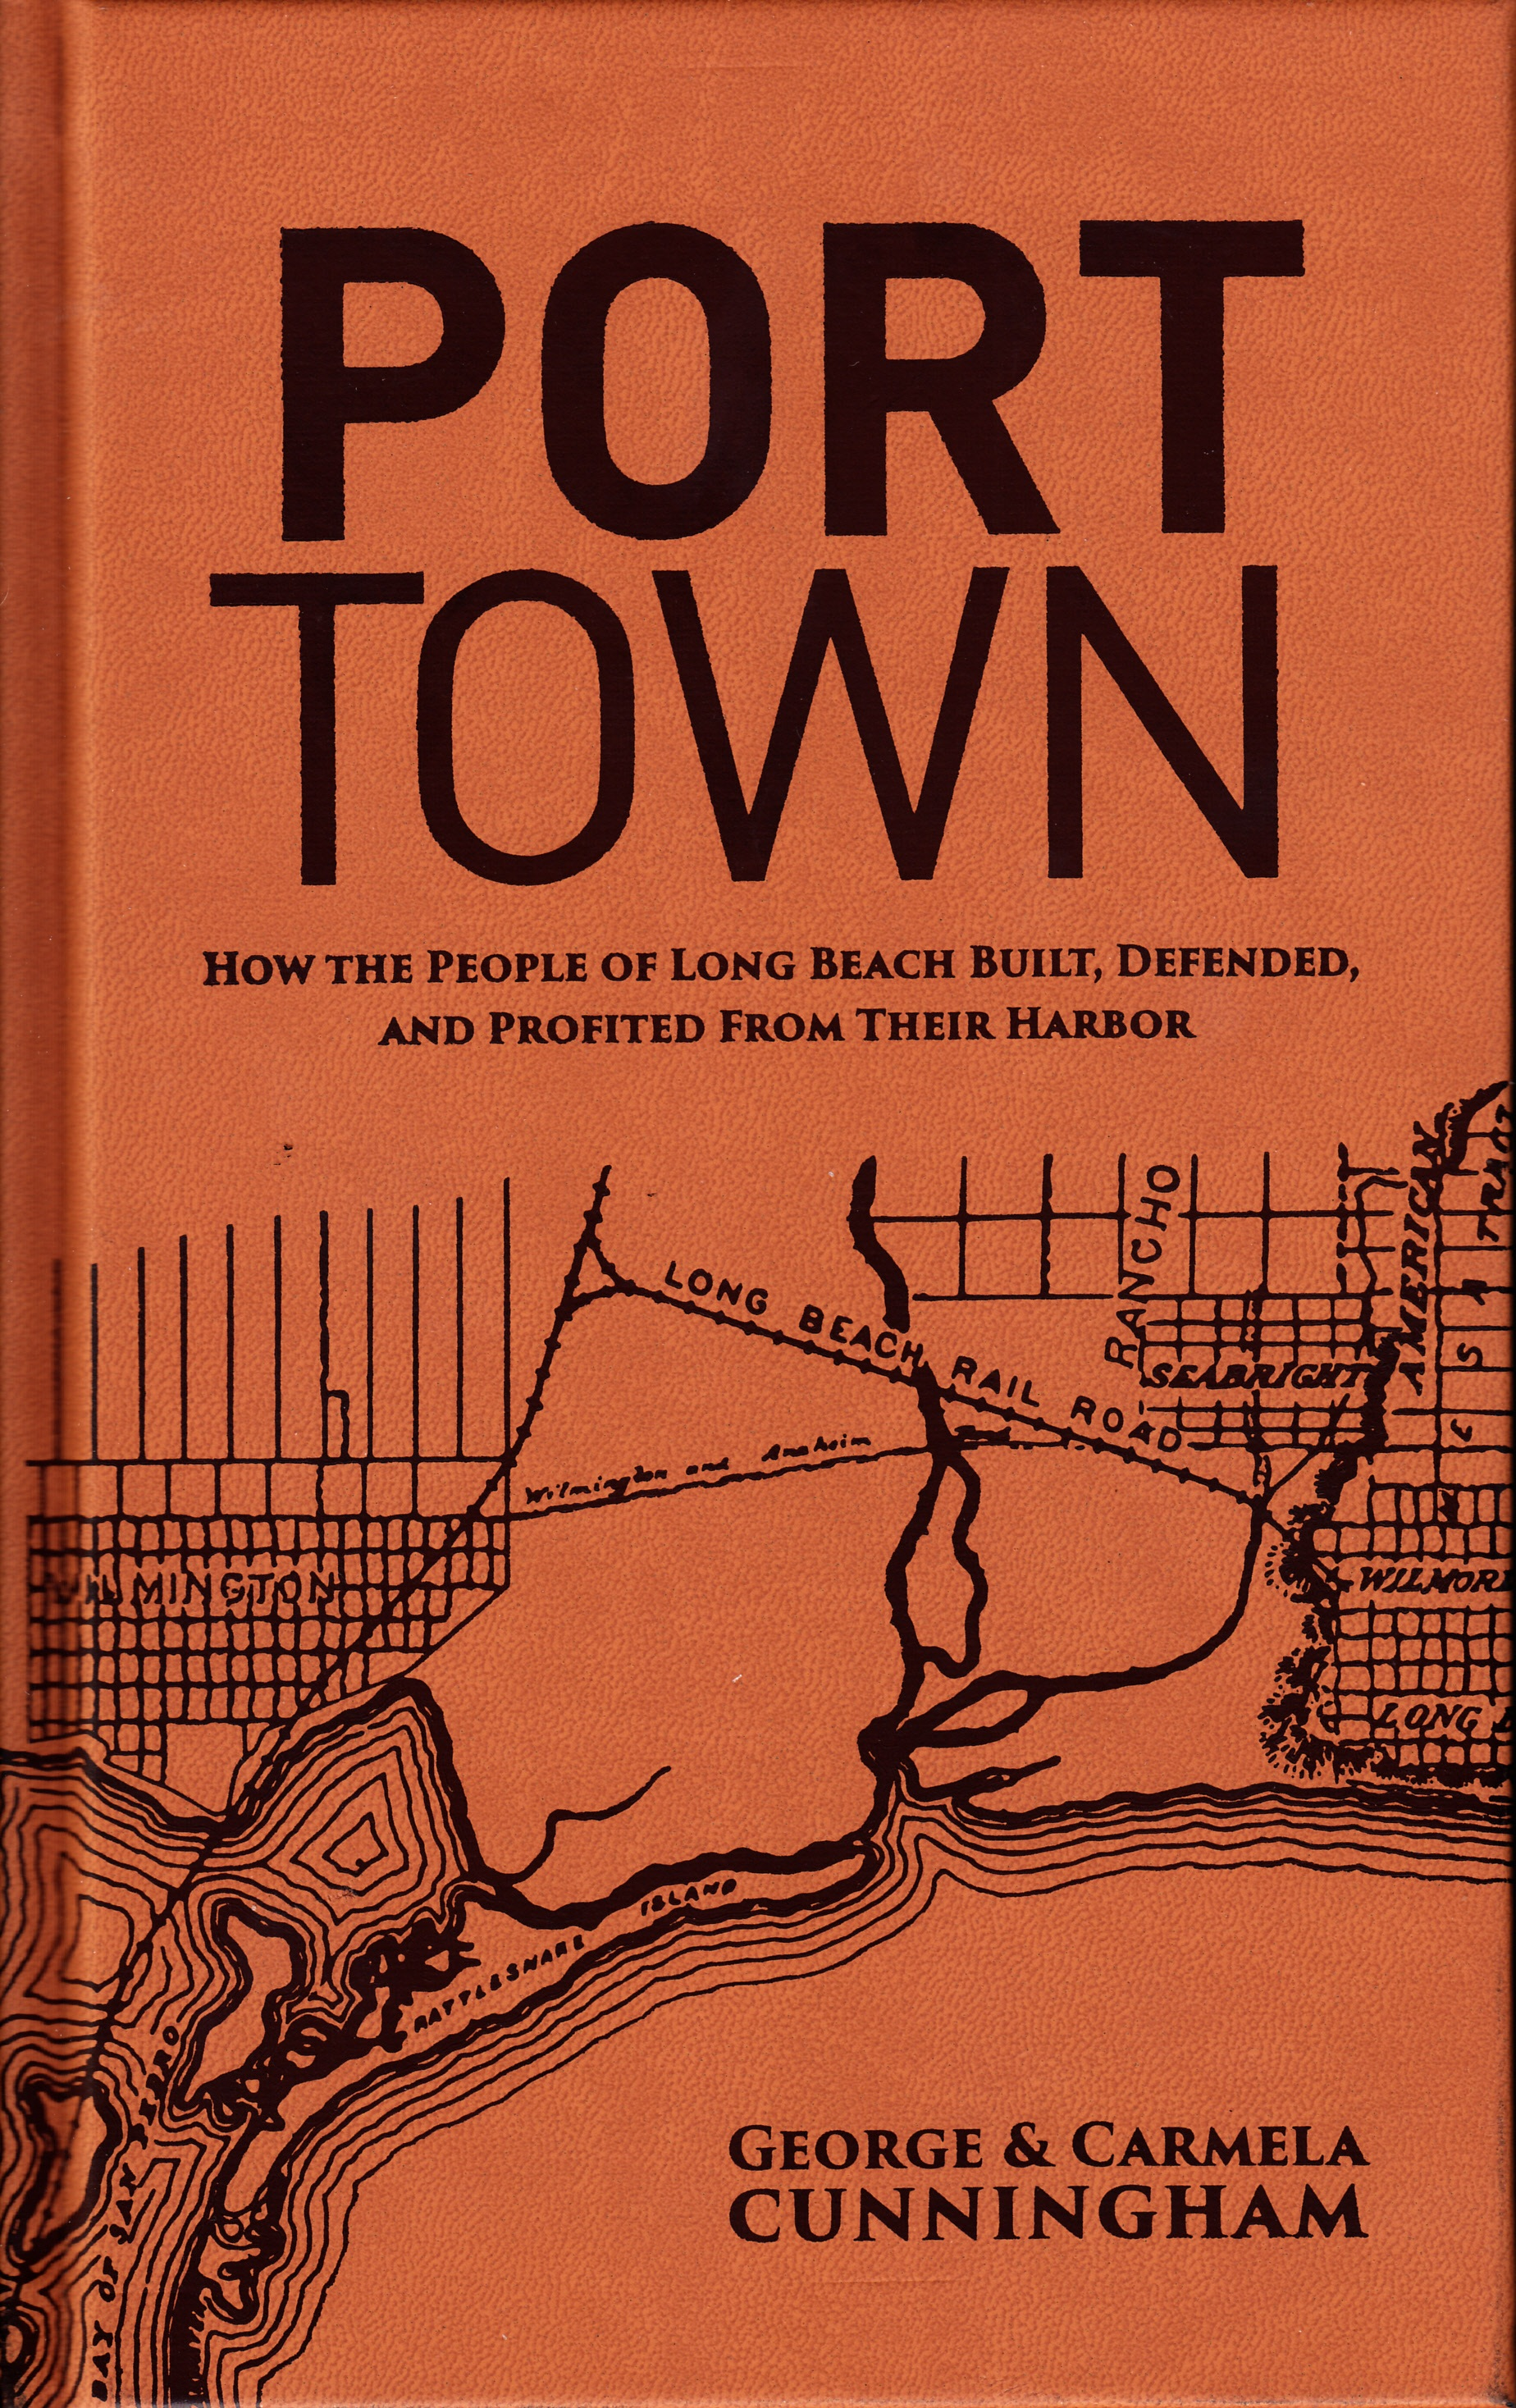 Port town how the people of long beach built, defended and profited from their harbor